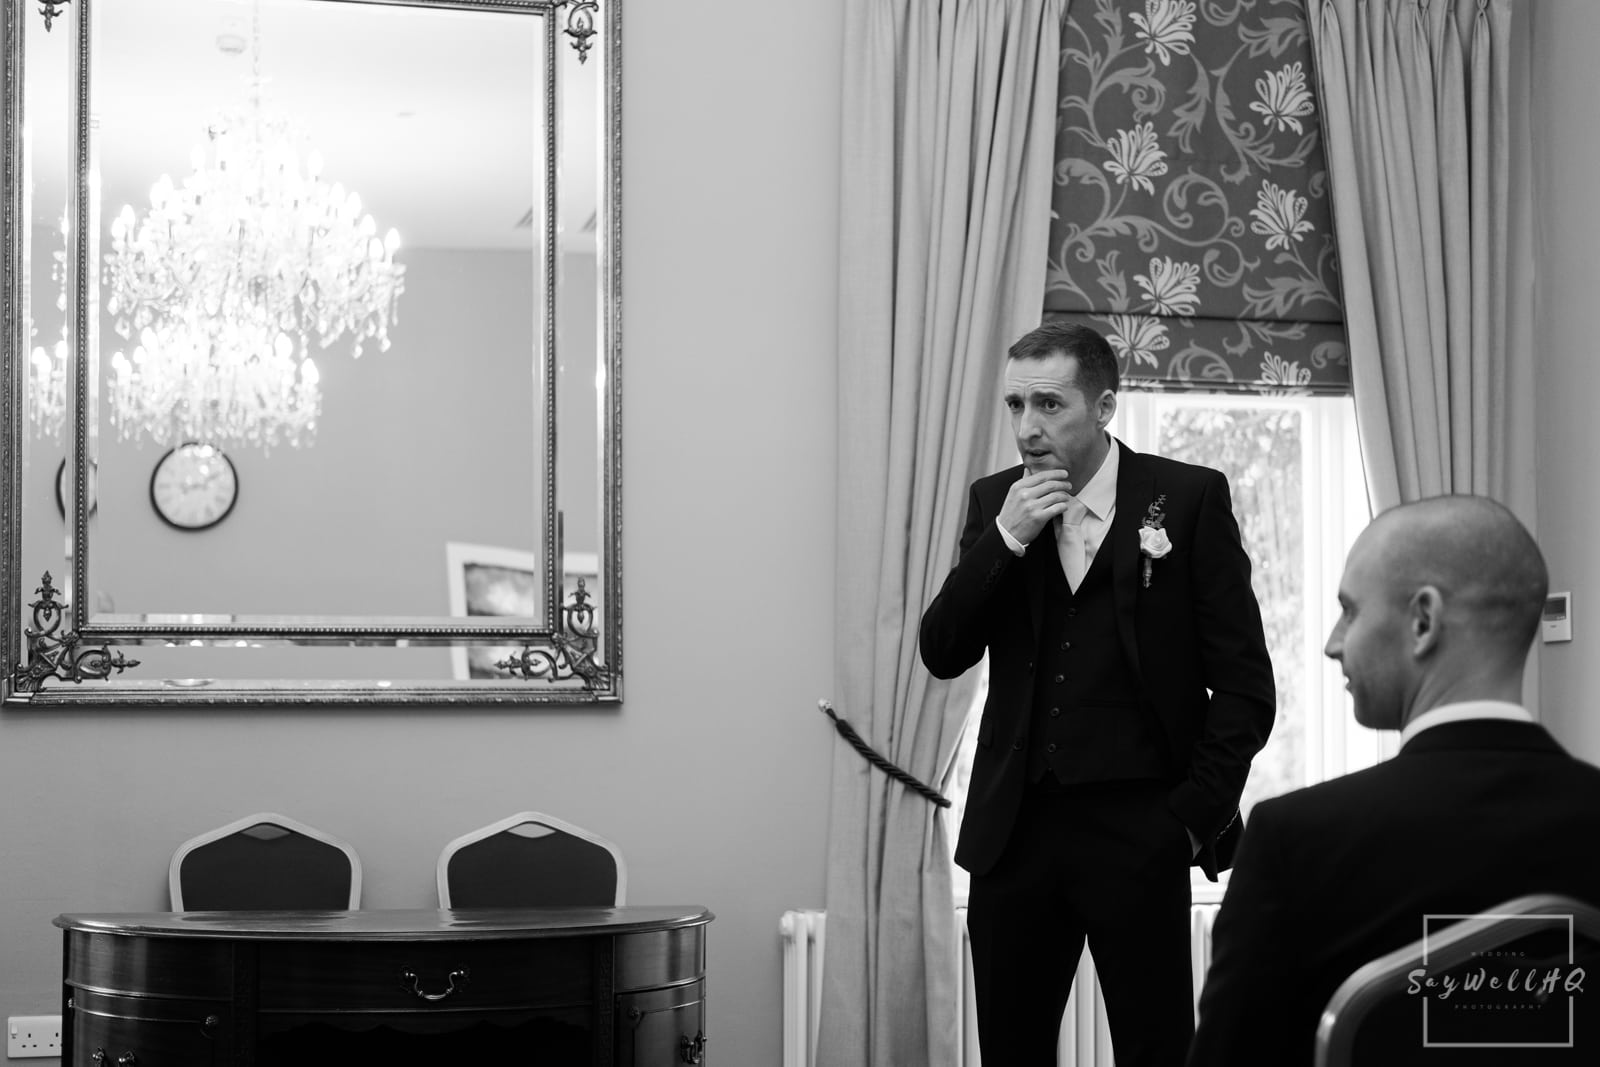 West Bridgford Wedding Photography + Bridgford Hall Wedding Photographer + Groom looking nervous before his wedding ceremony